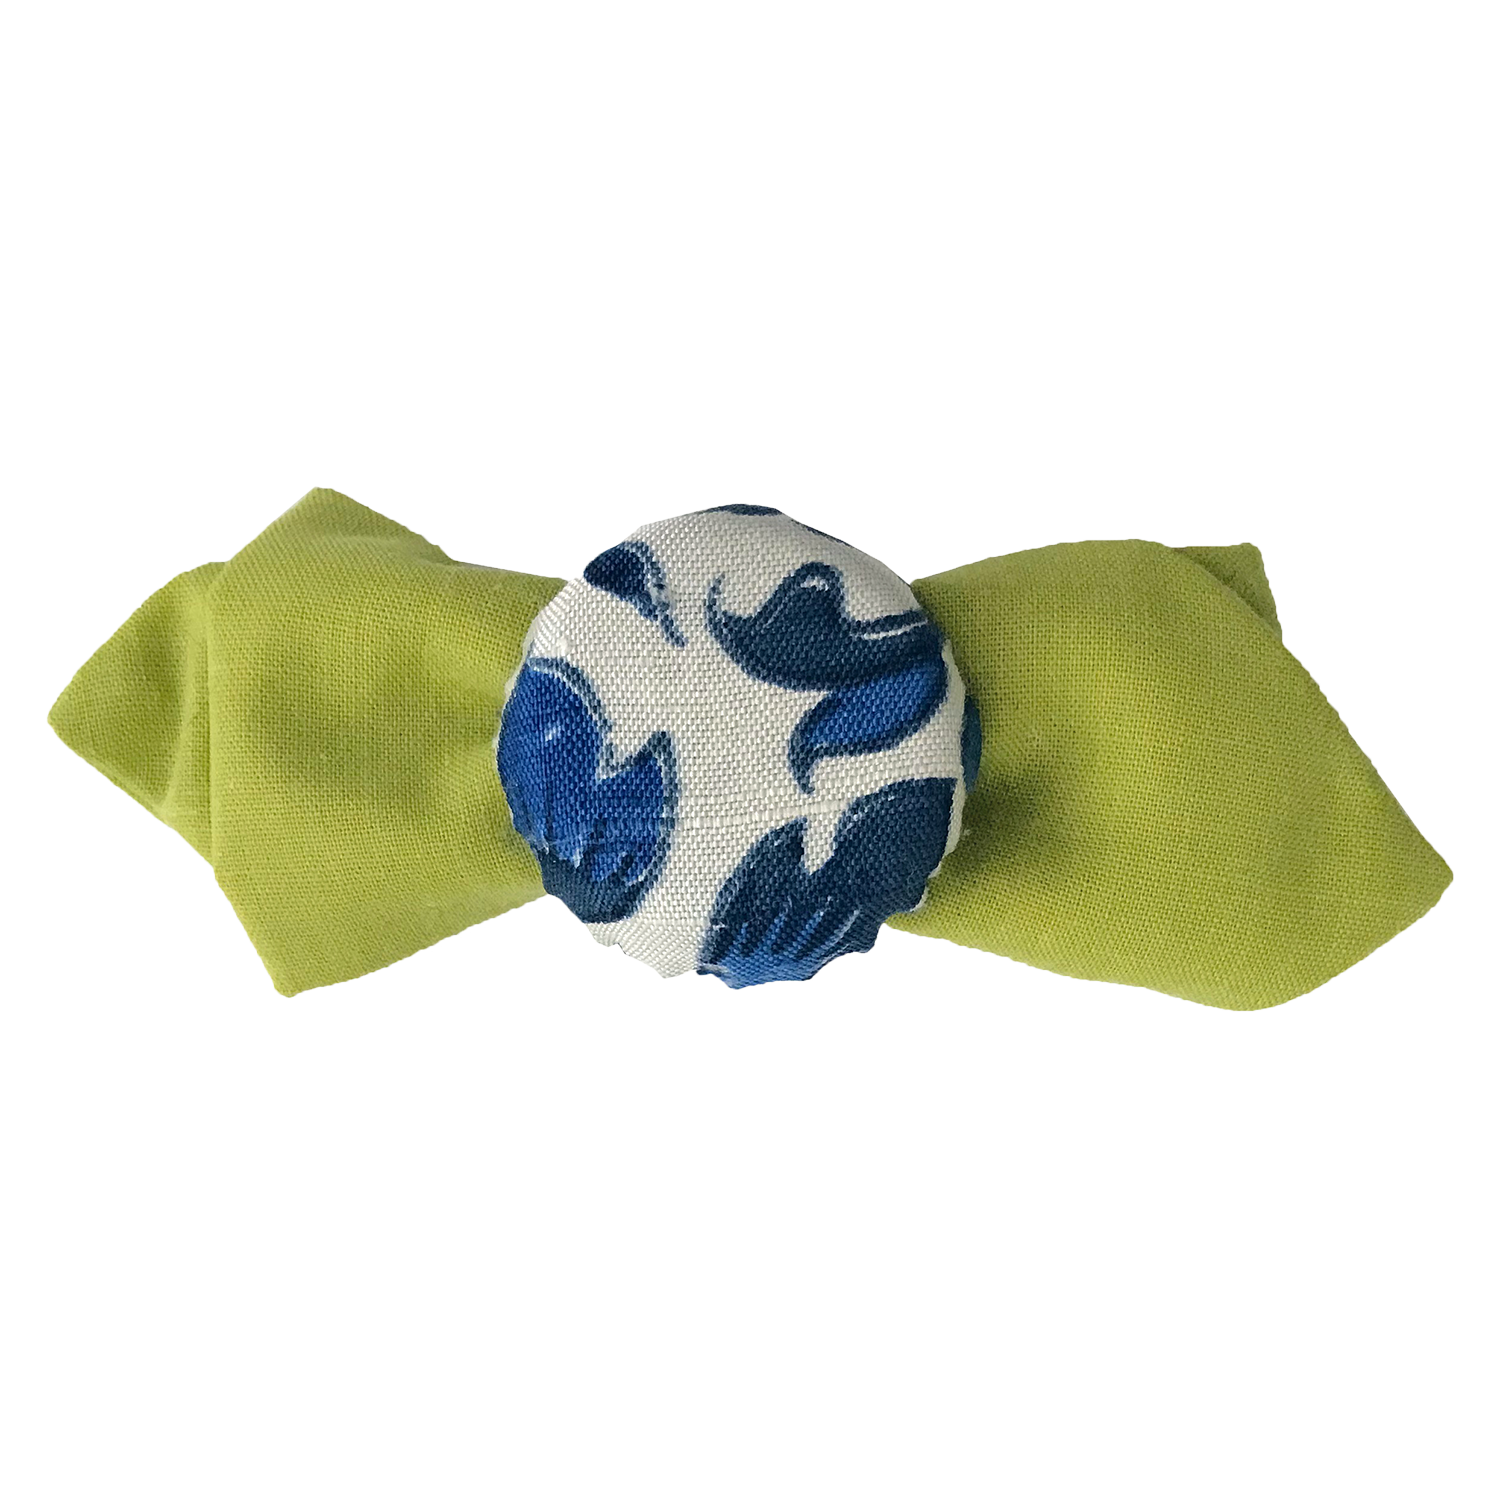 Hair pin in the shape of a mini lime green bow tie with blue and white flower print fabric covered bottle cap